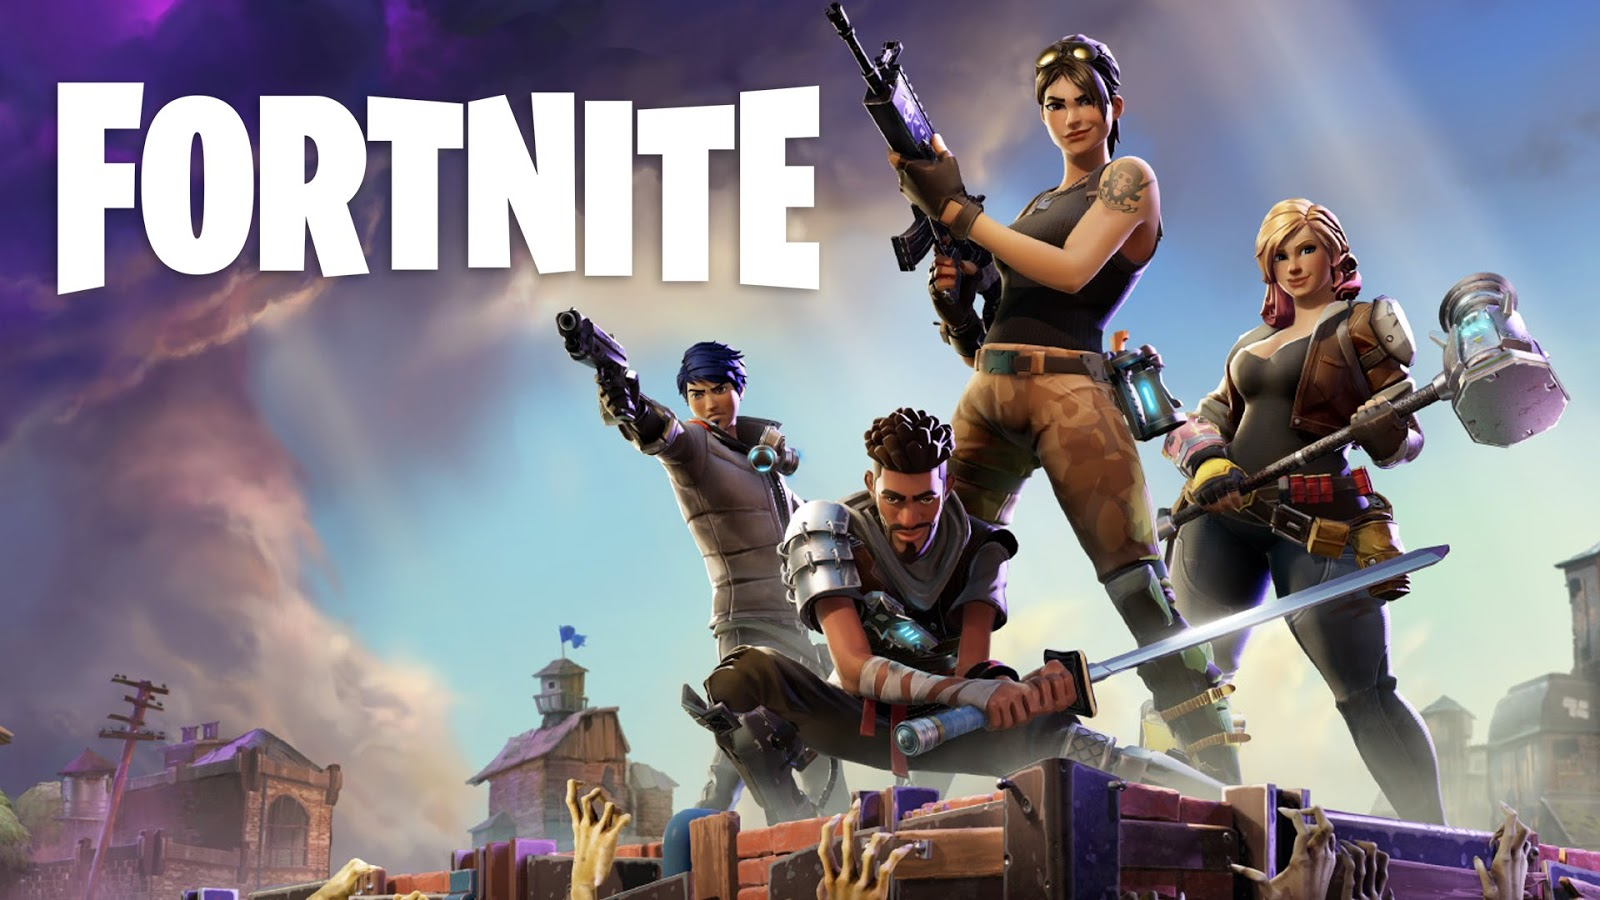 fortnite mobile android download apk